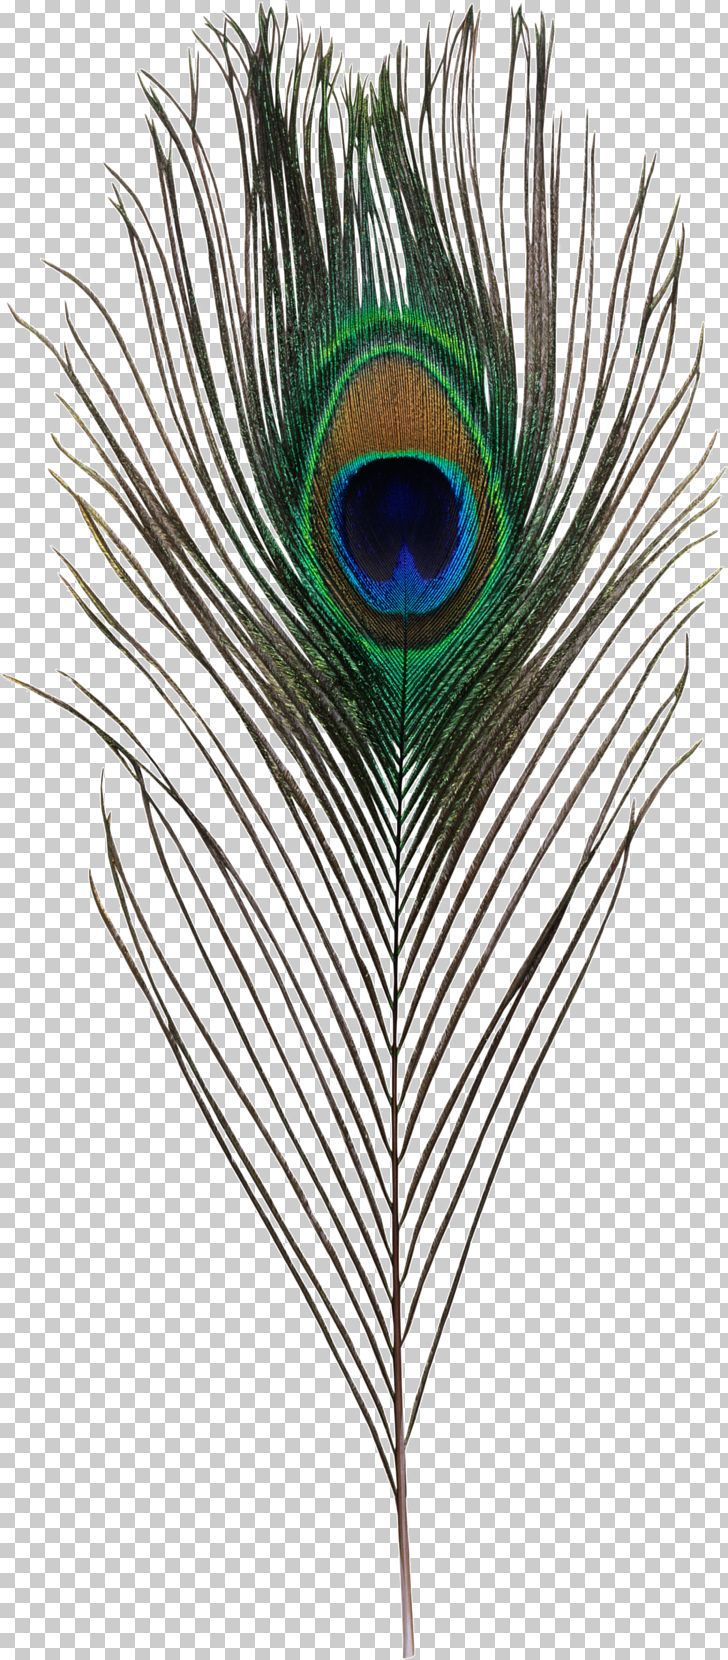 Bird Asiatic Peafowl Feather Simple Eye In Invertebrates PNG, Clipart, Animals, Asiatic, Asiatic Peafowl, Bird, Color Free PNG Download